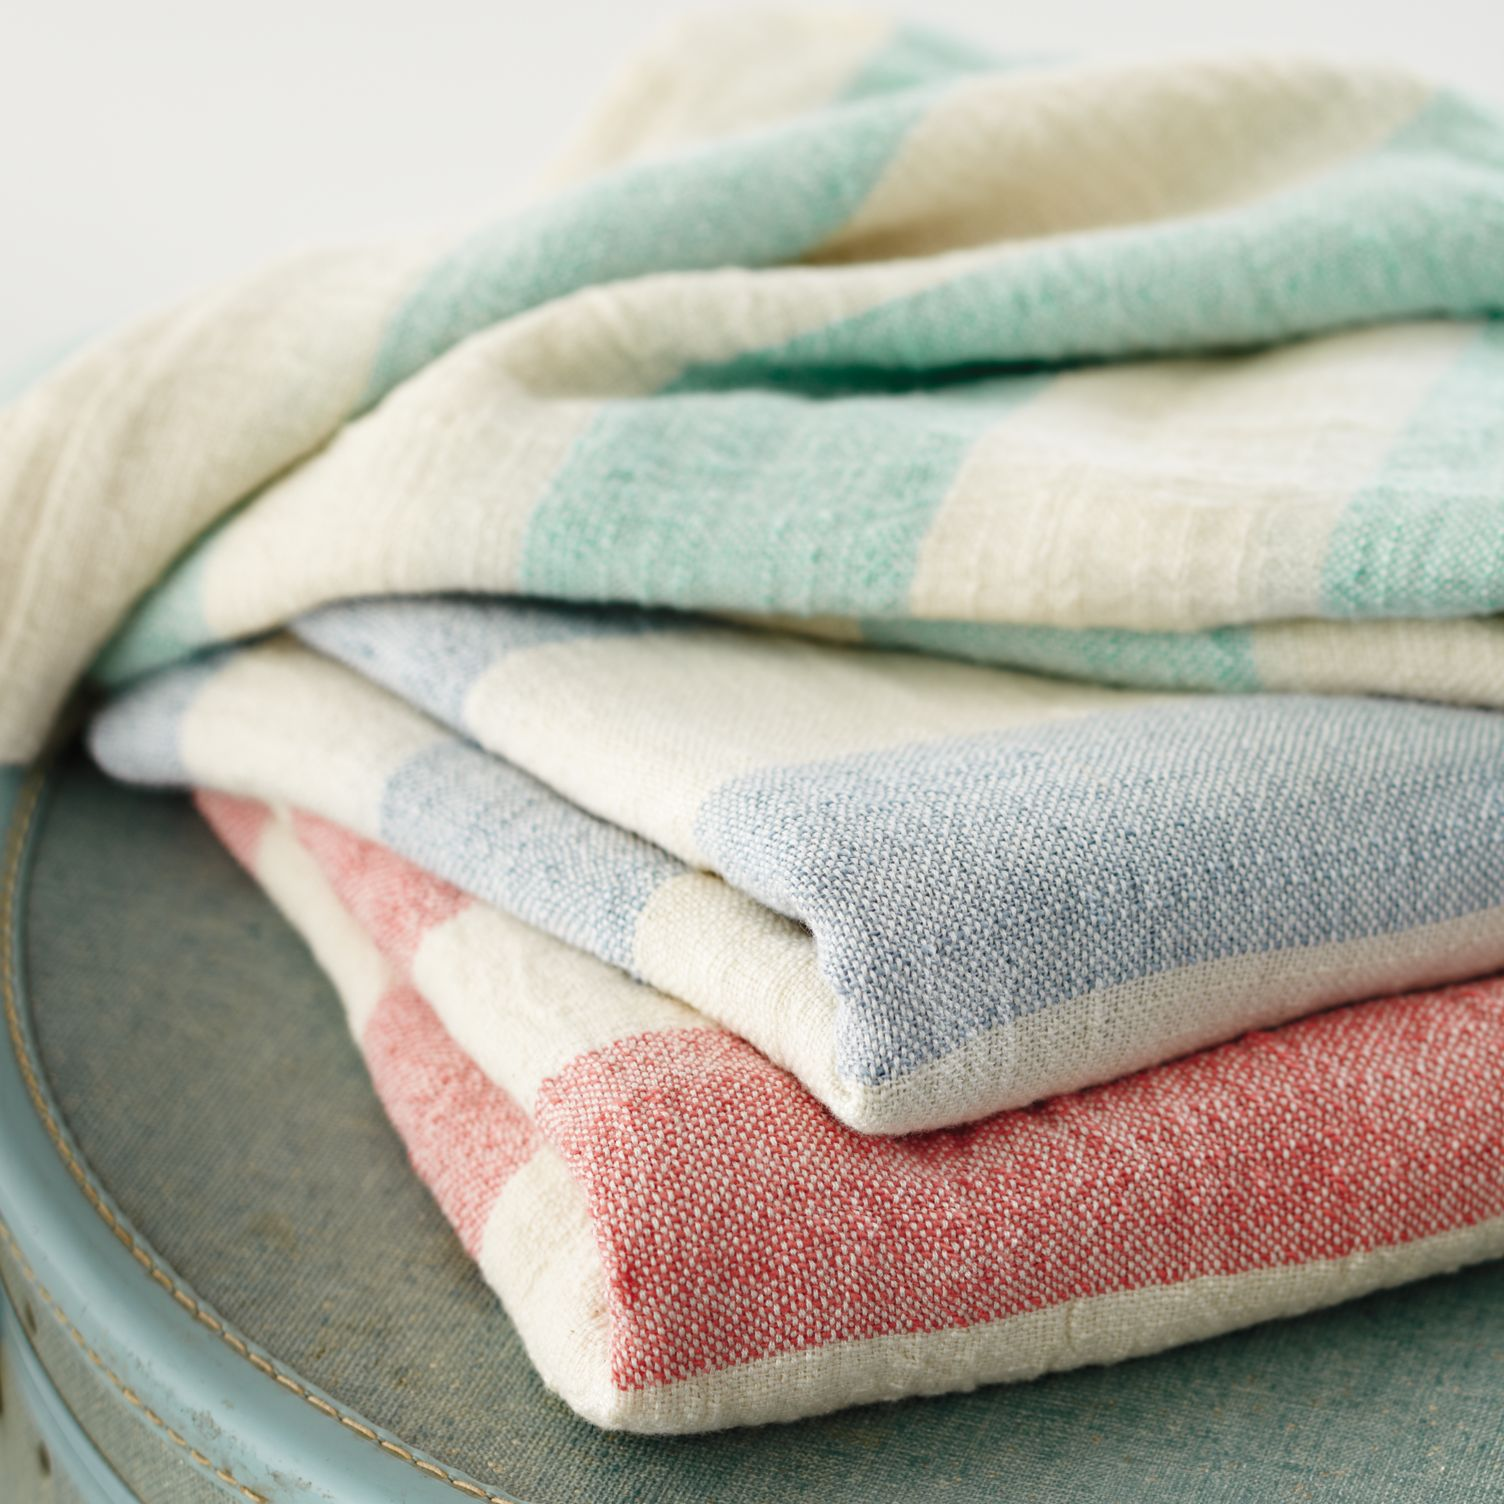 Striped baby blankets from Crate & Barrel